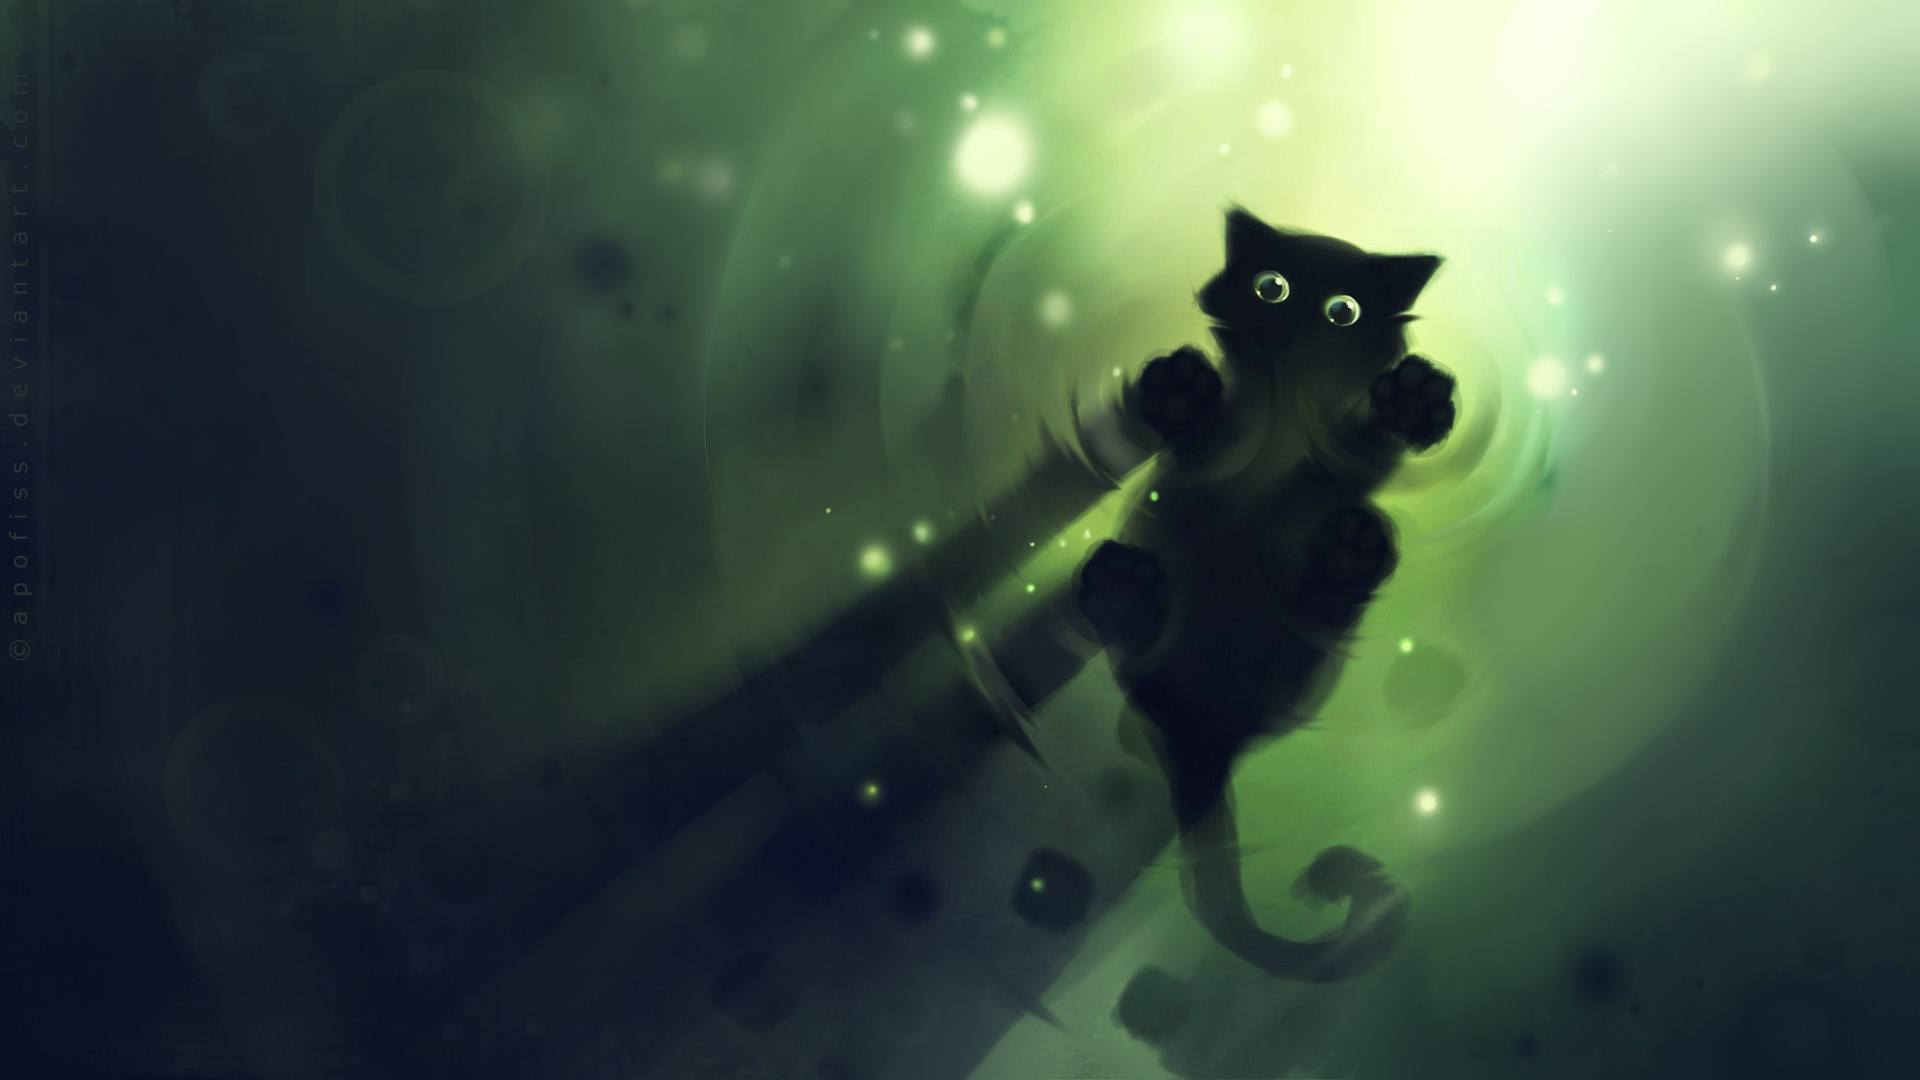 Cute Animated Cat Cartoon Background Wallpaper For Desktop And